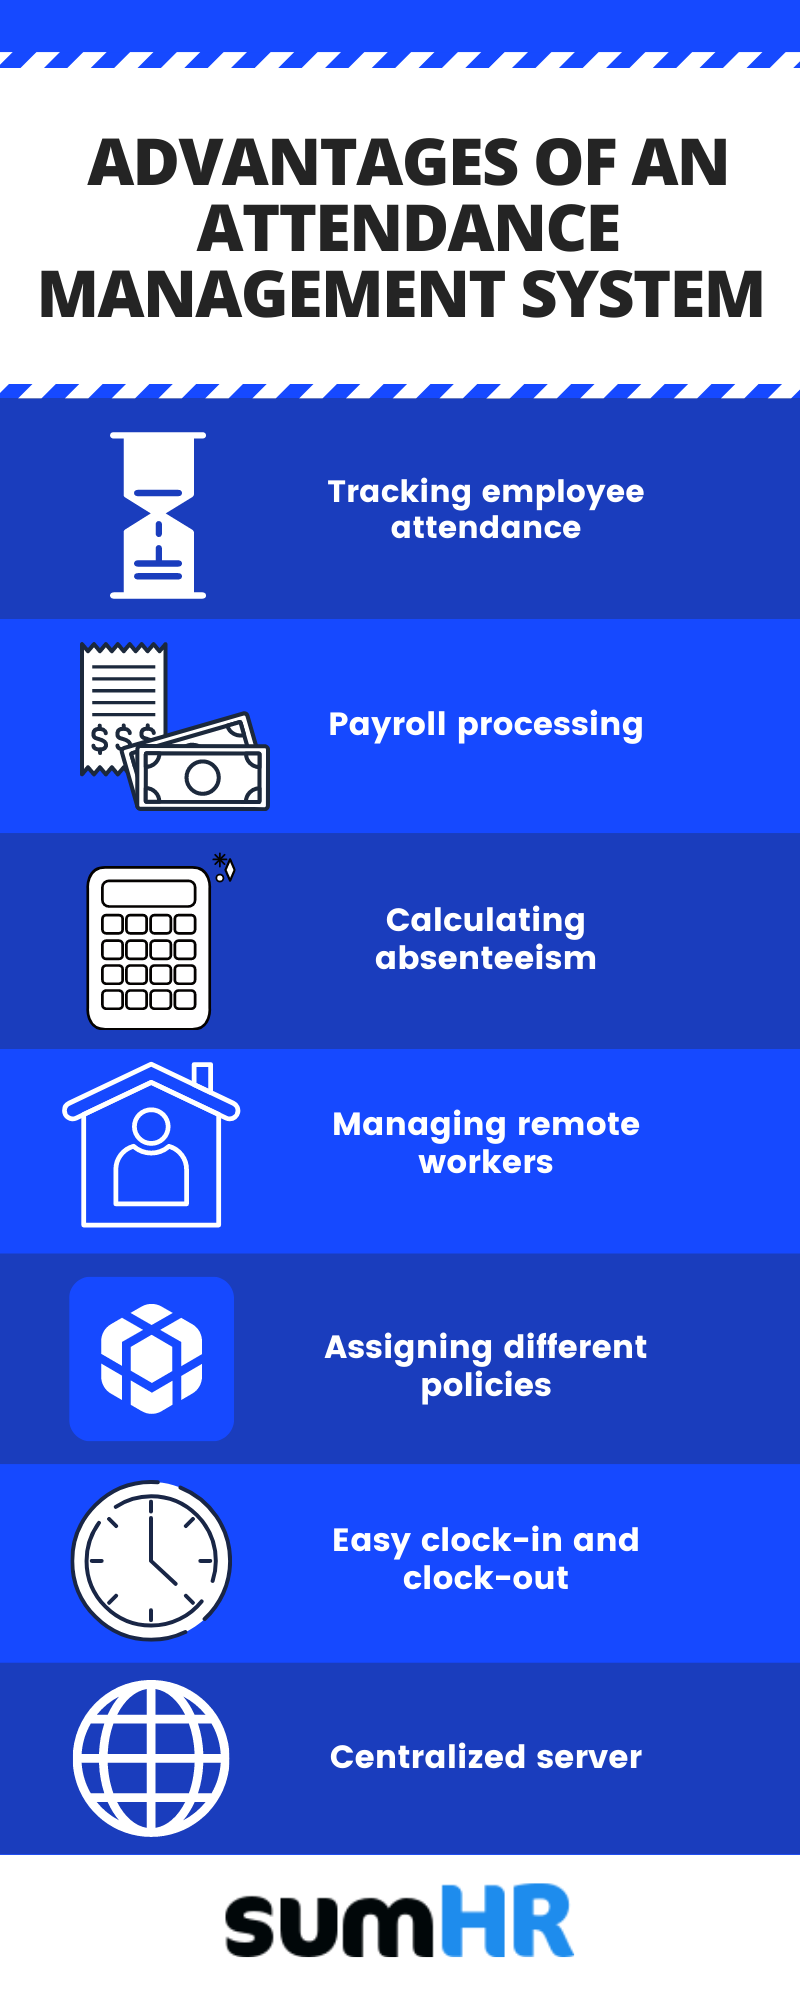 7 Reasons why you should adopt an Attendance Management System